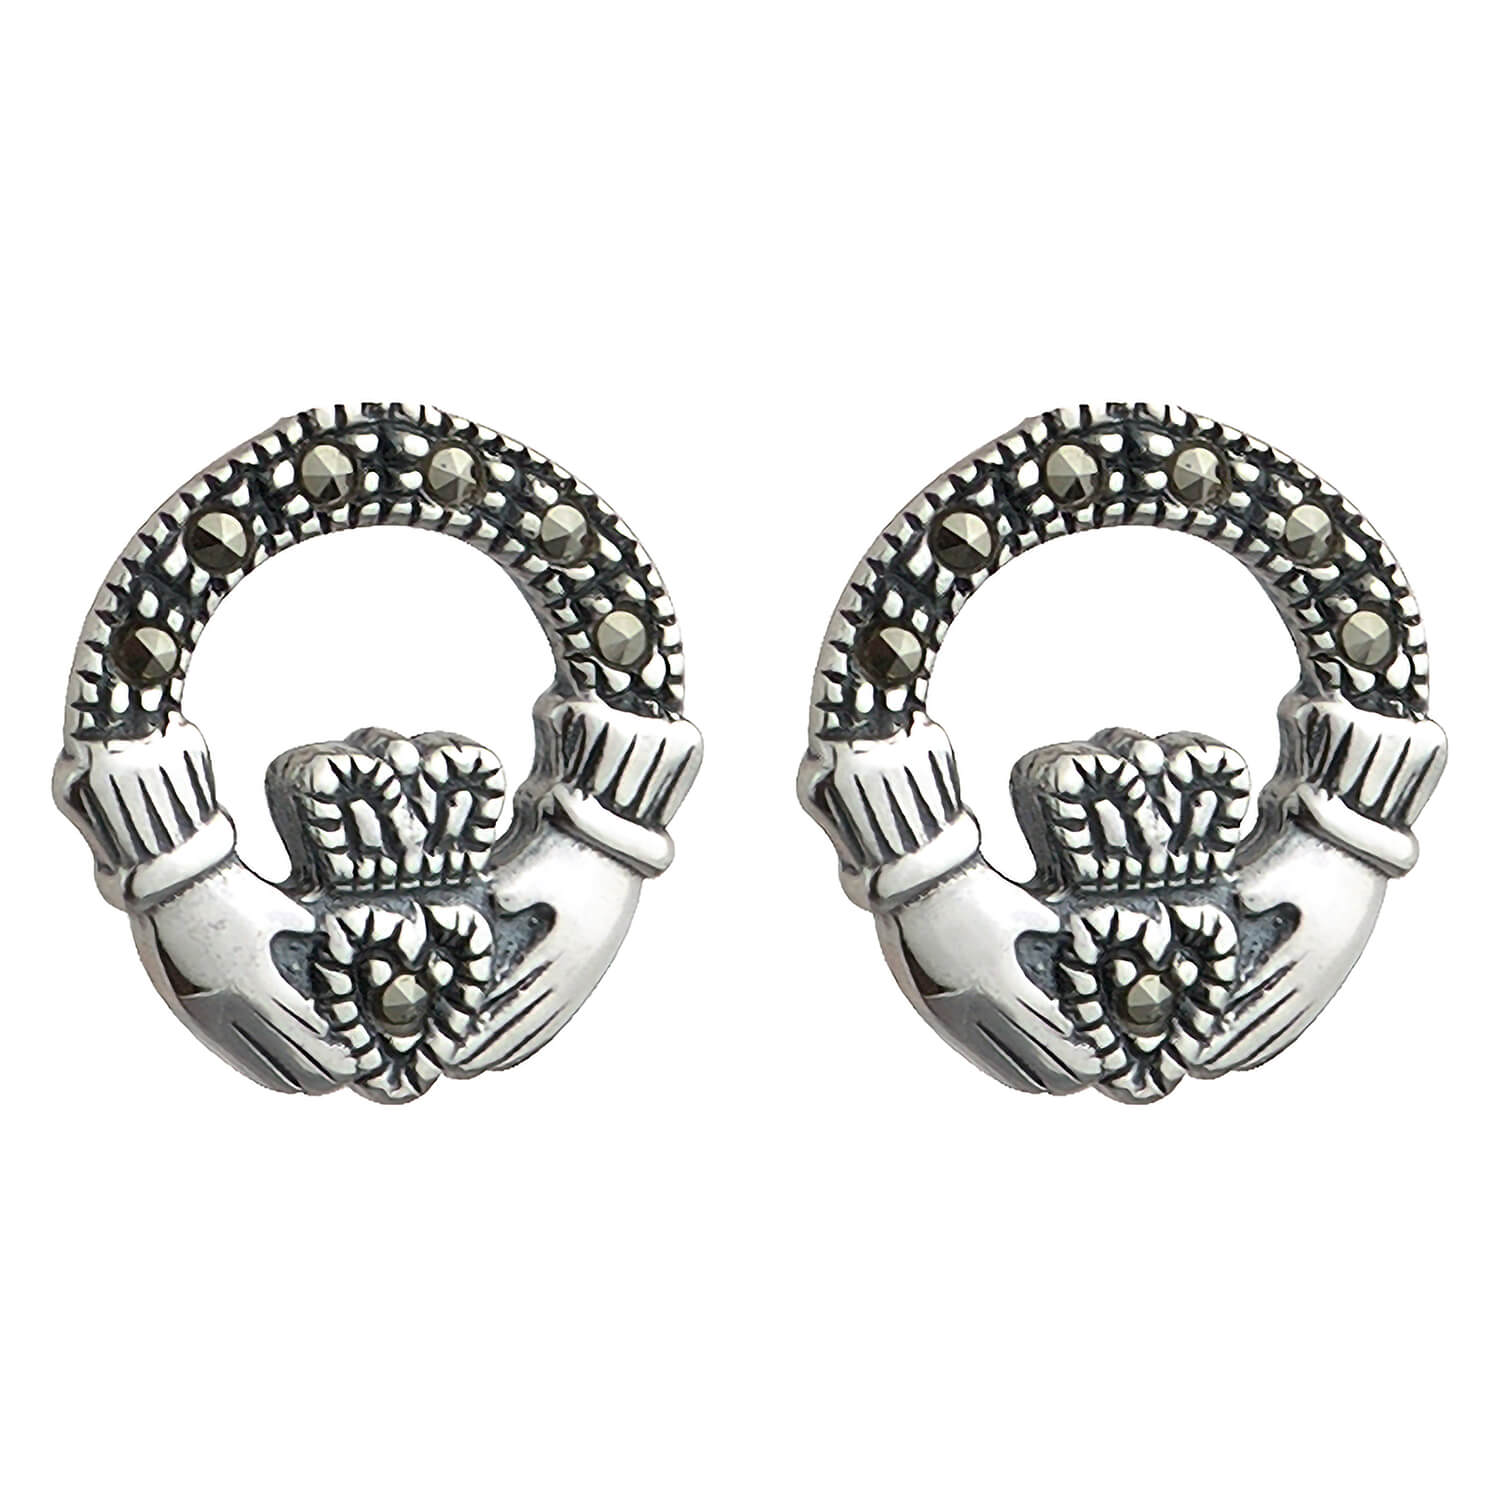 Sterling Silver and Marcasite Claddagh Stud Earrings.